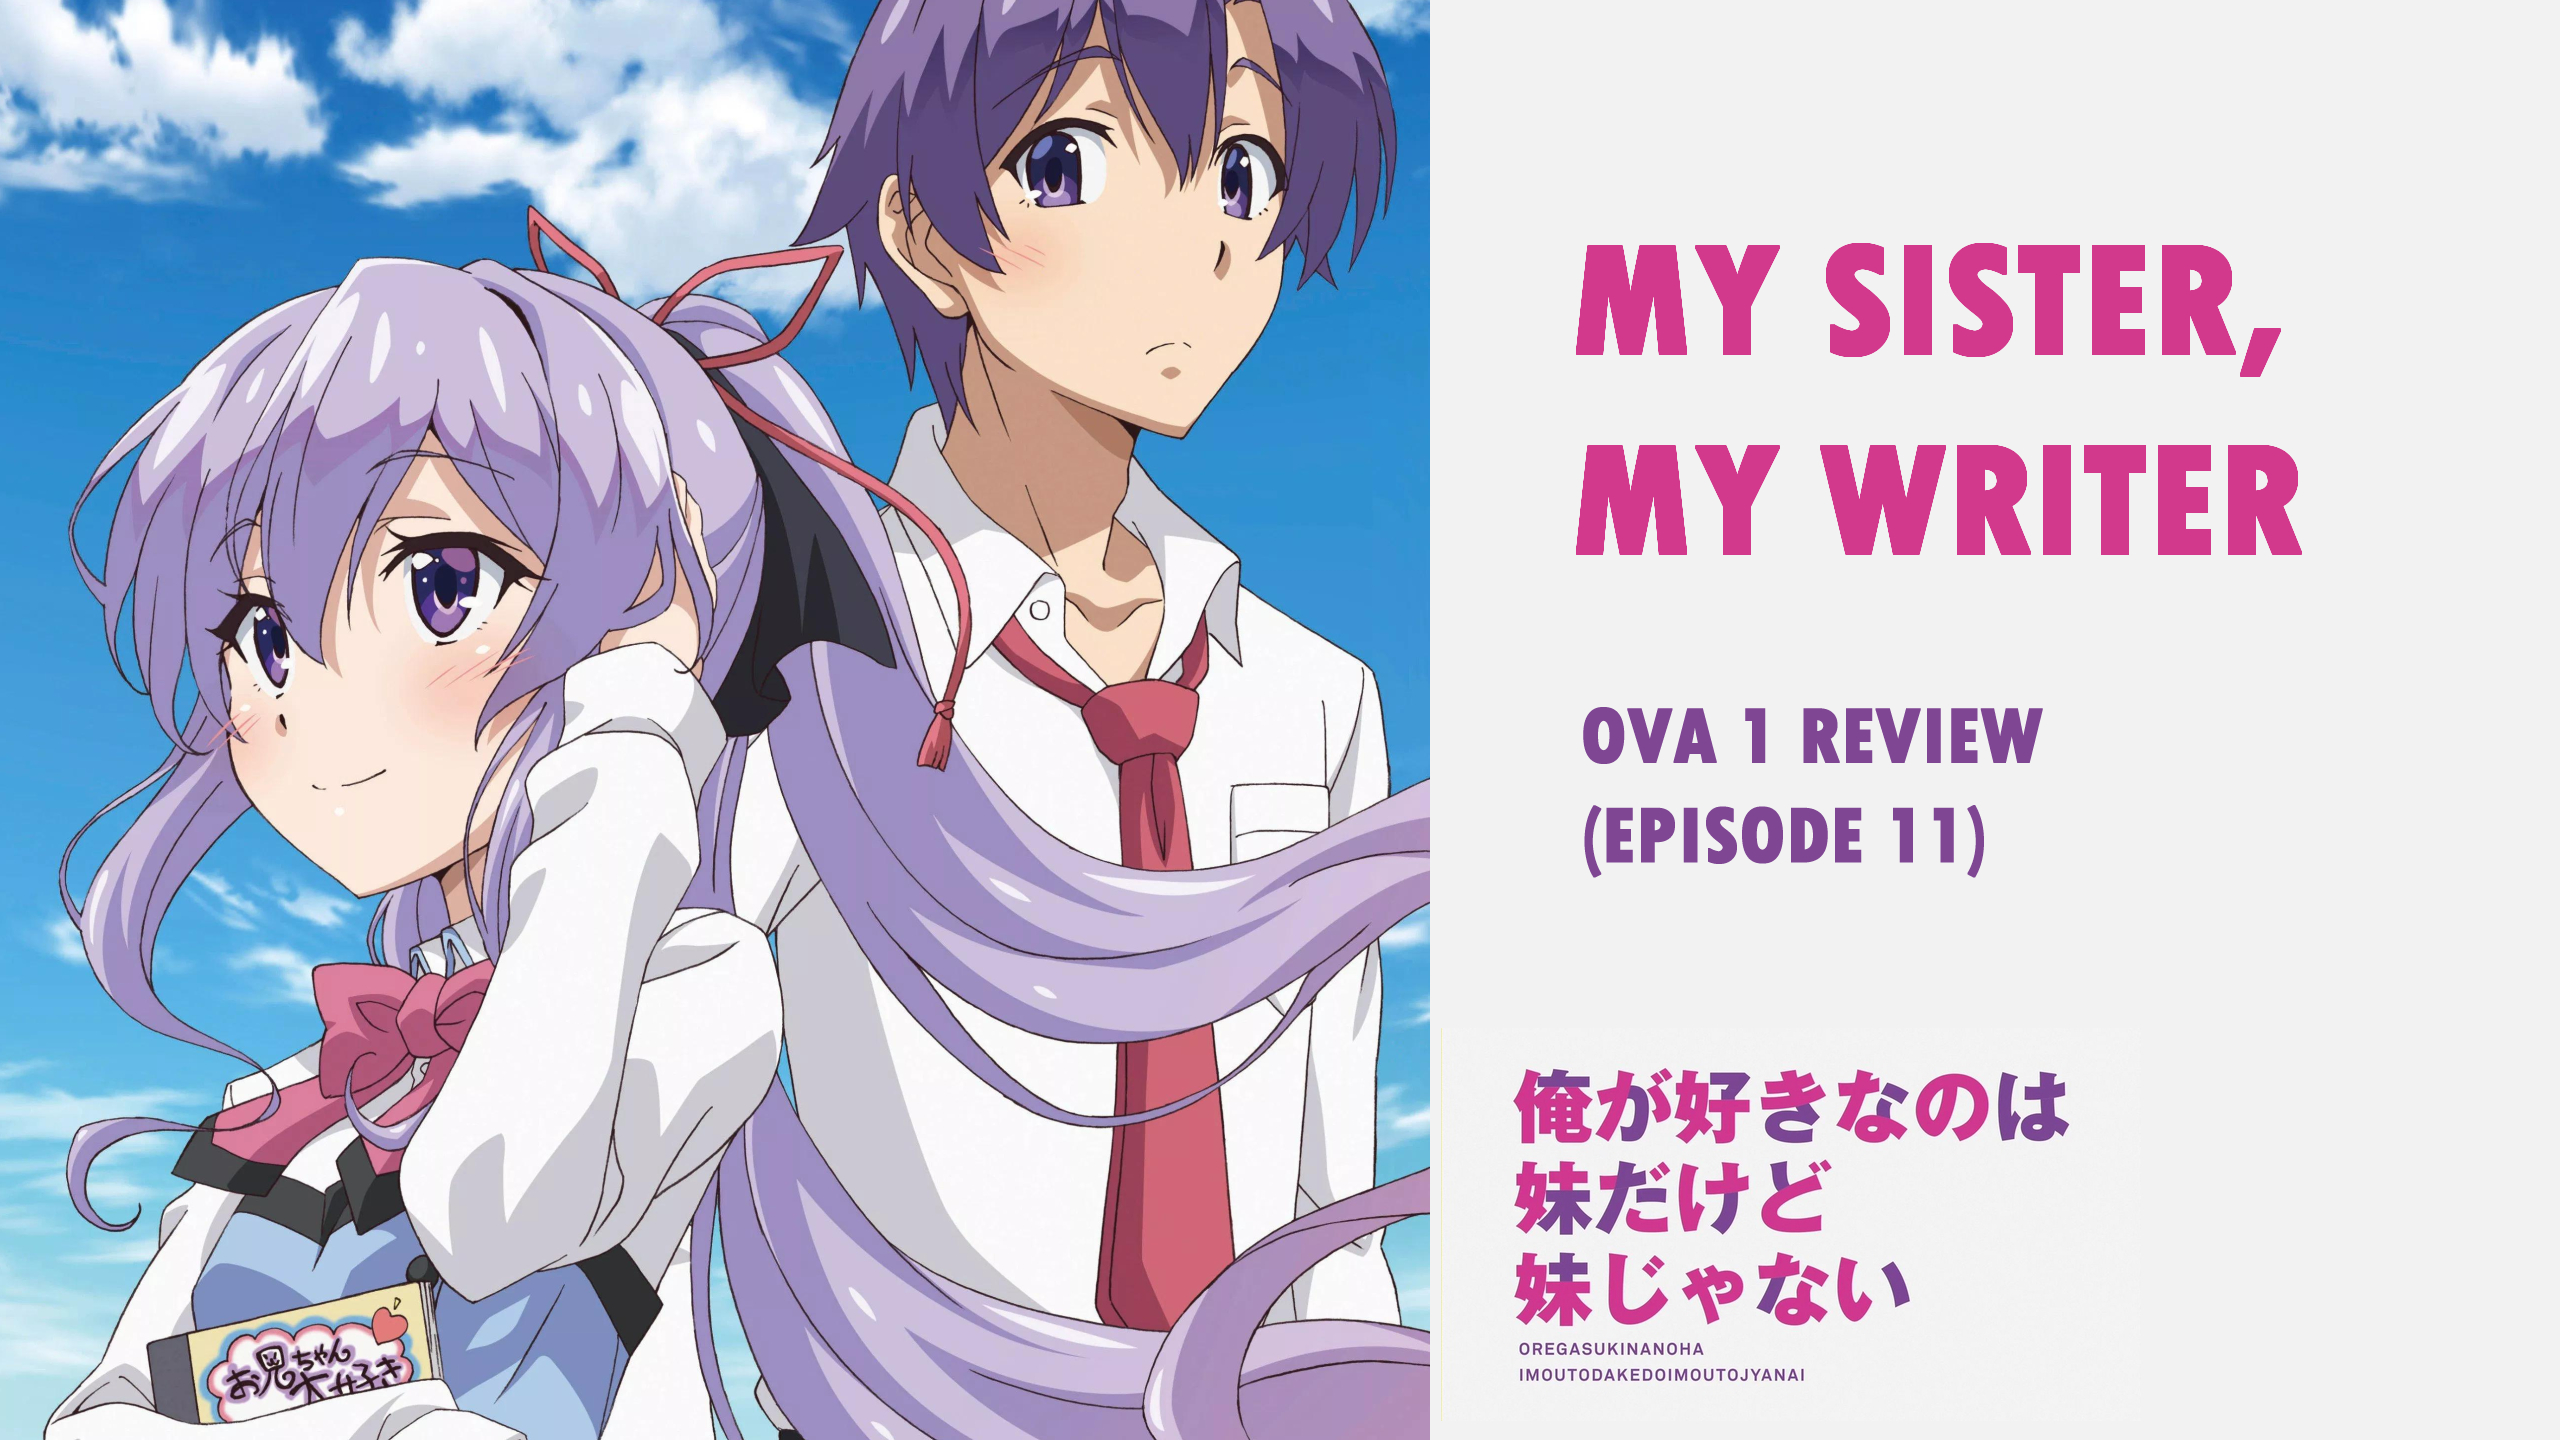 Virtual NTR – 'My Sister, My Writer' OVA 1 Review